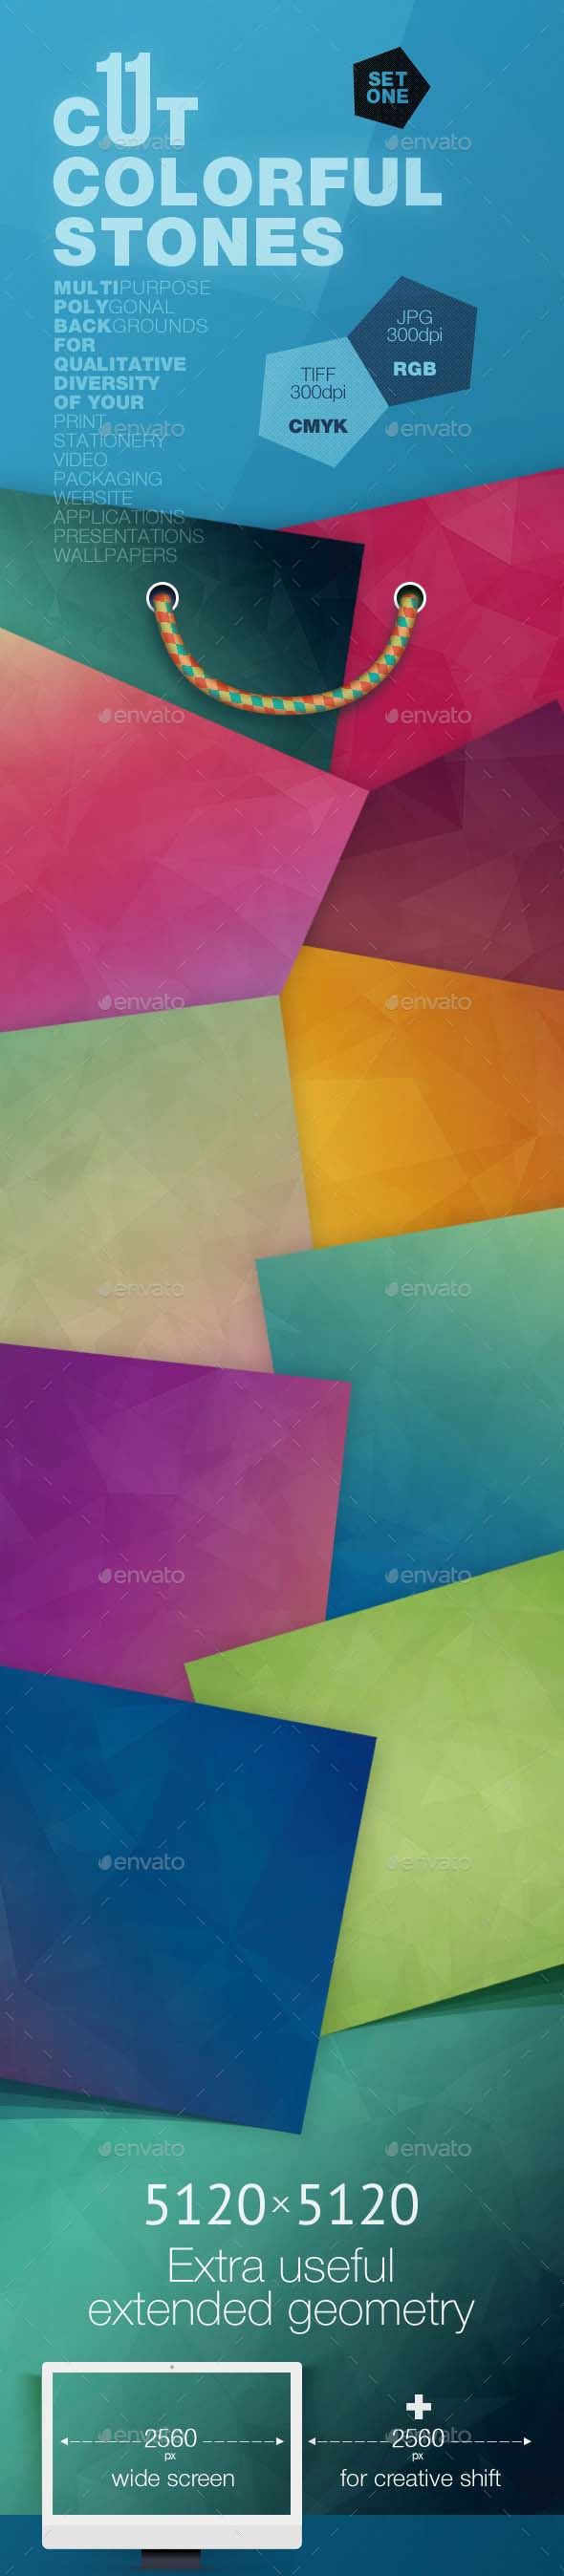 11 Cut Colorful Stones Backgrounds